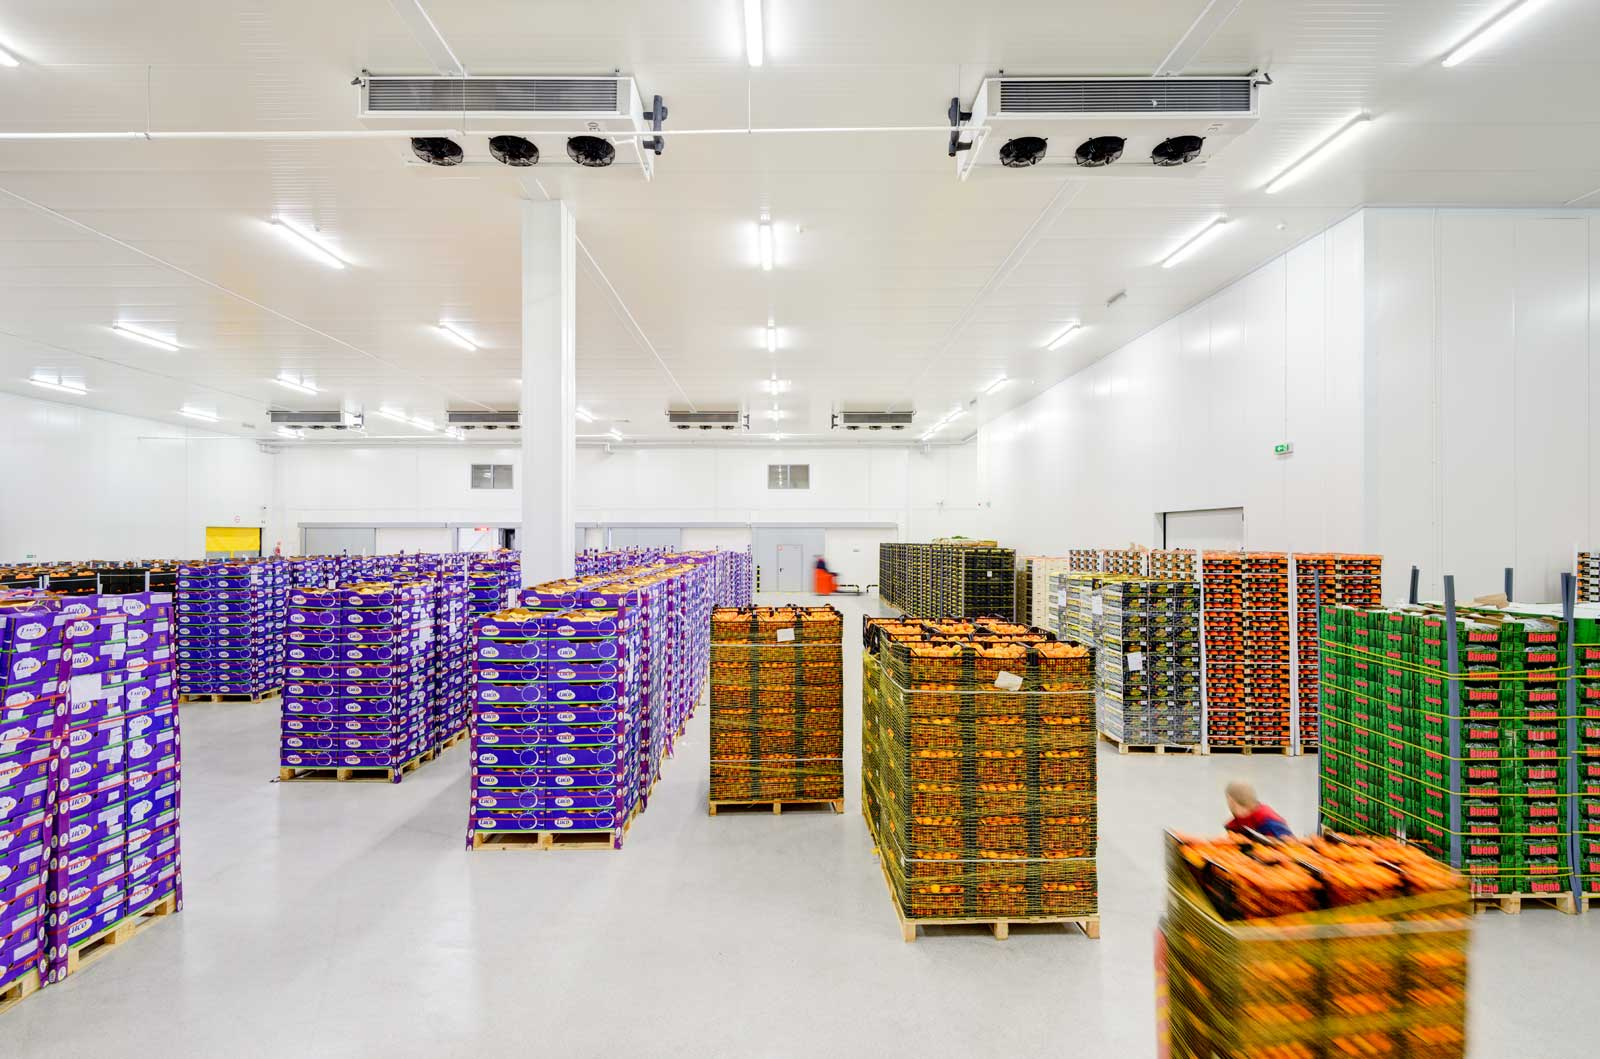 Warehouse with fruit and vegetables